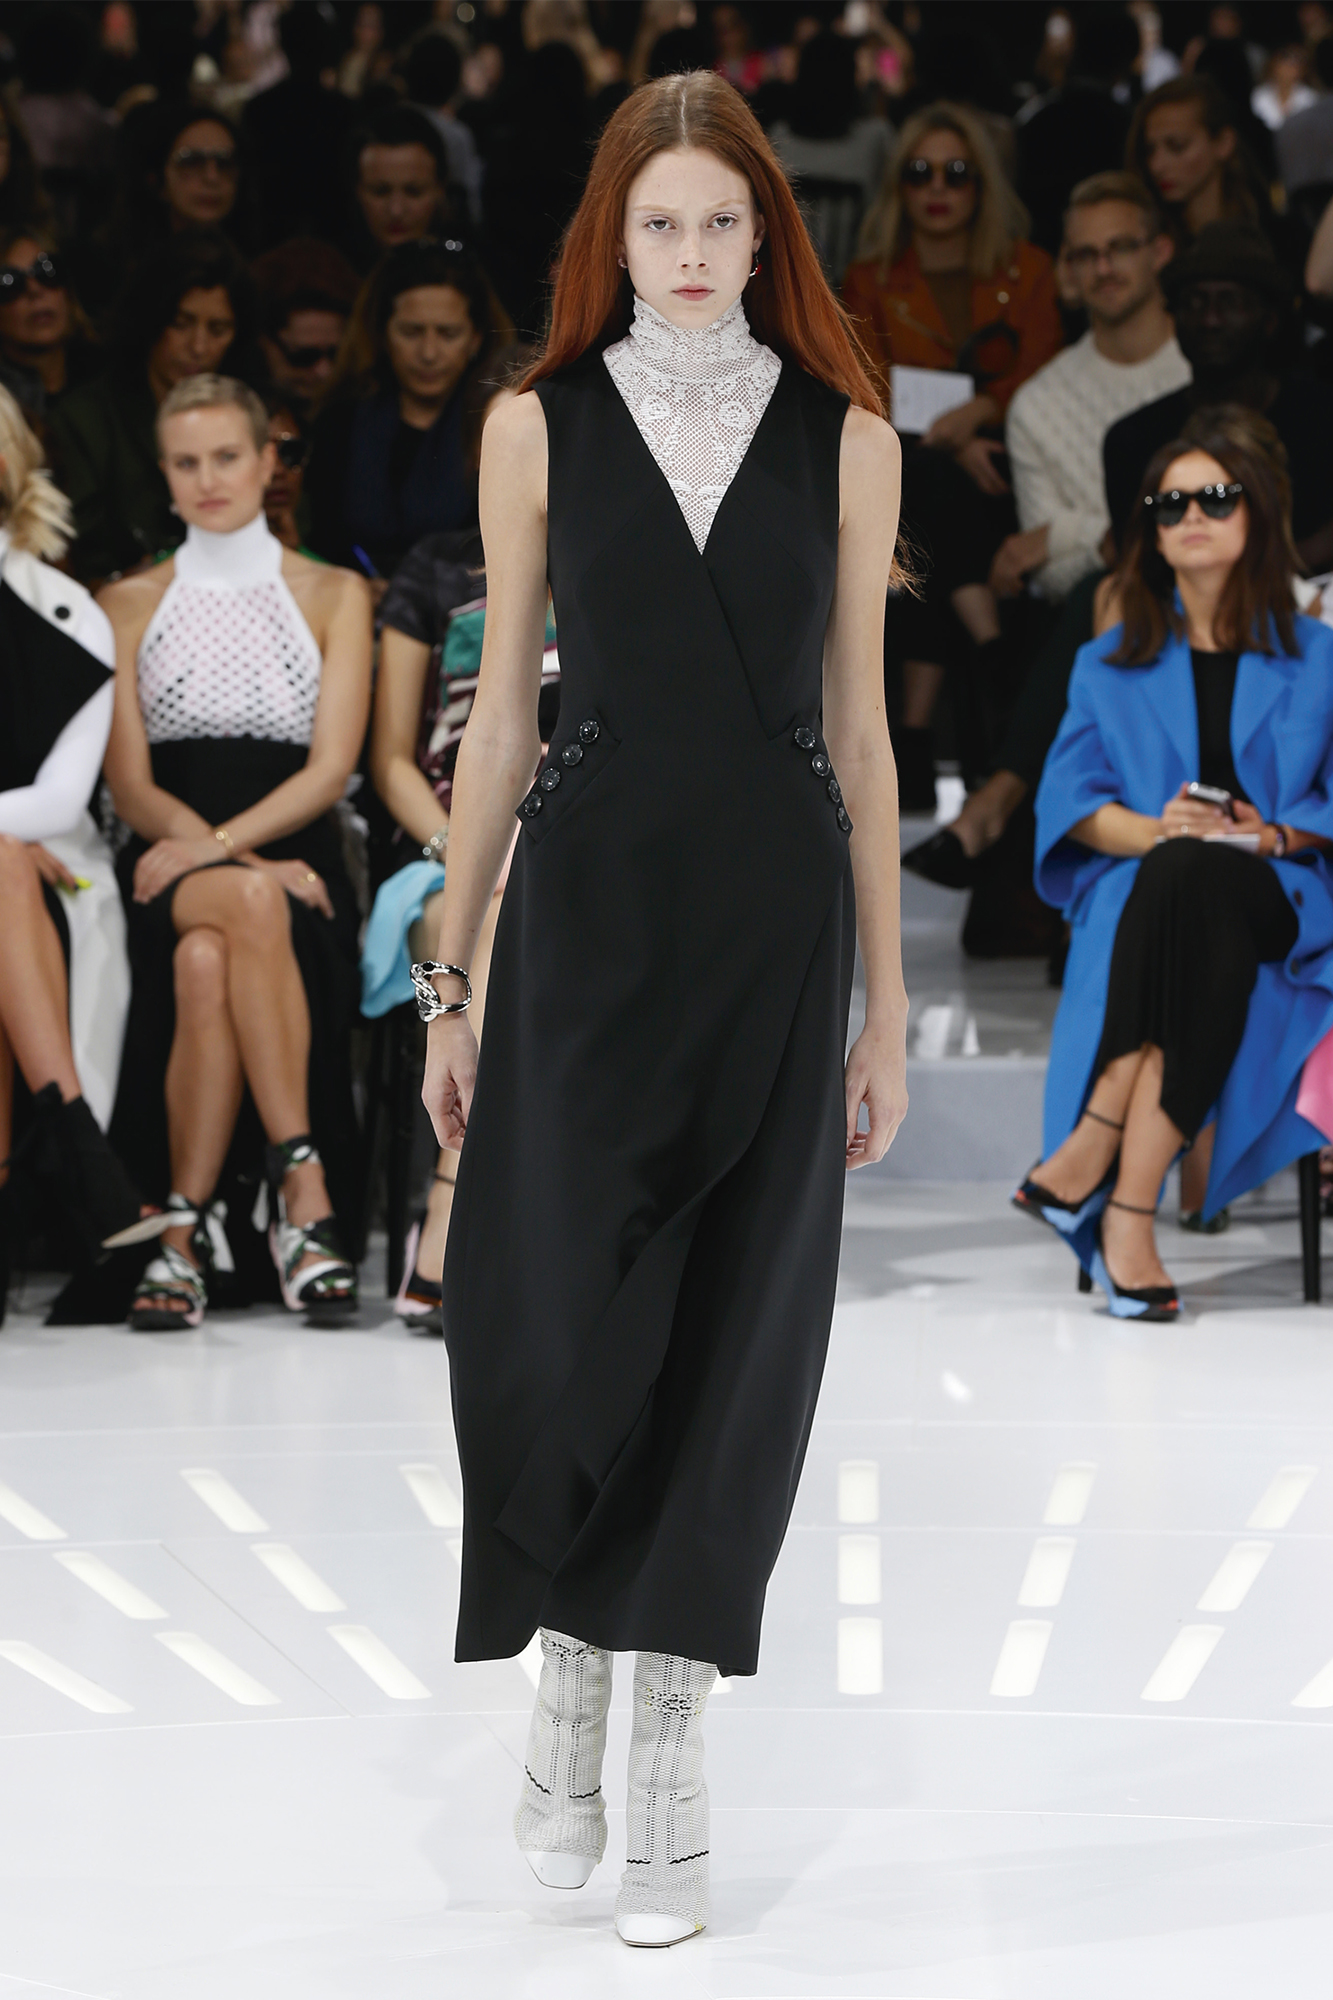 New Western Fashion Christian Dior Ready To Wear Dresses Spring Summer Collection 2015  (31)